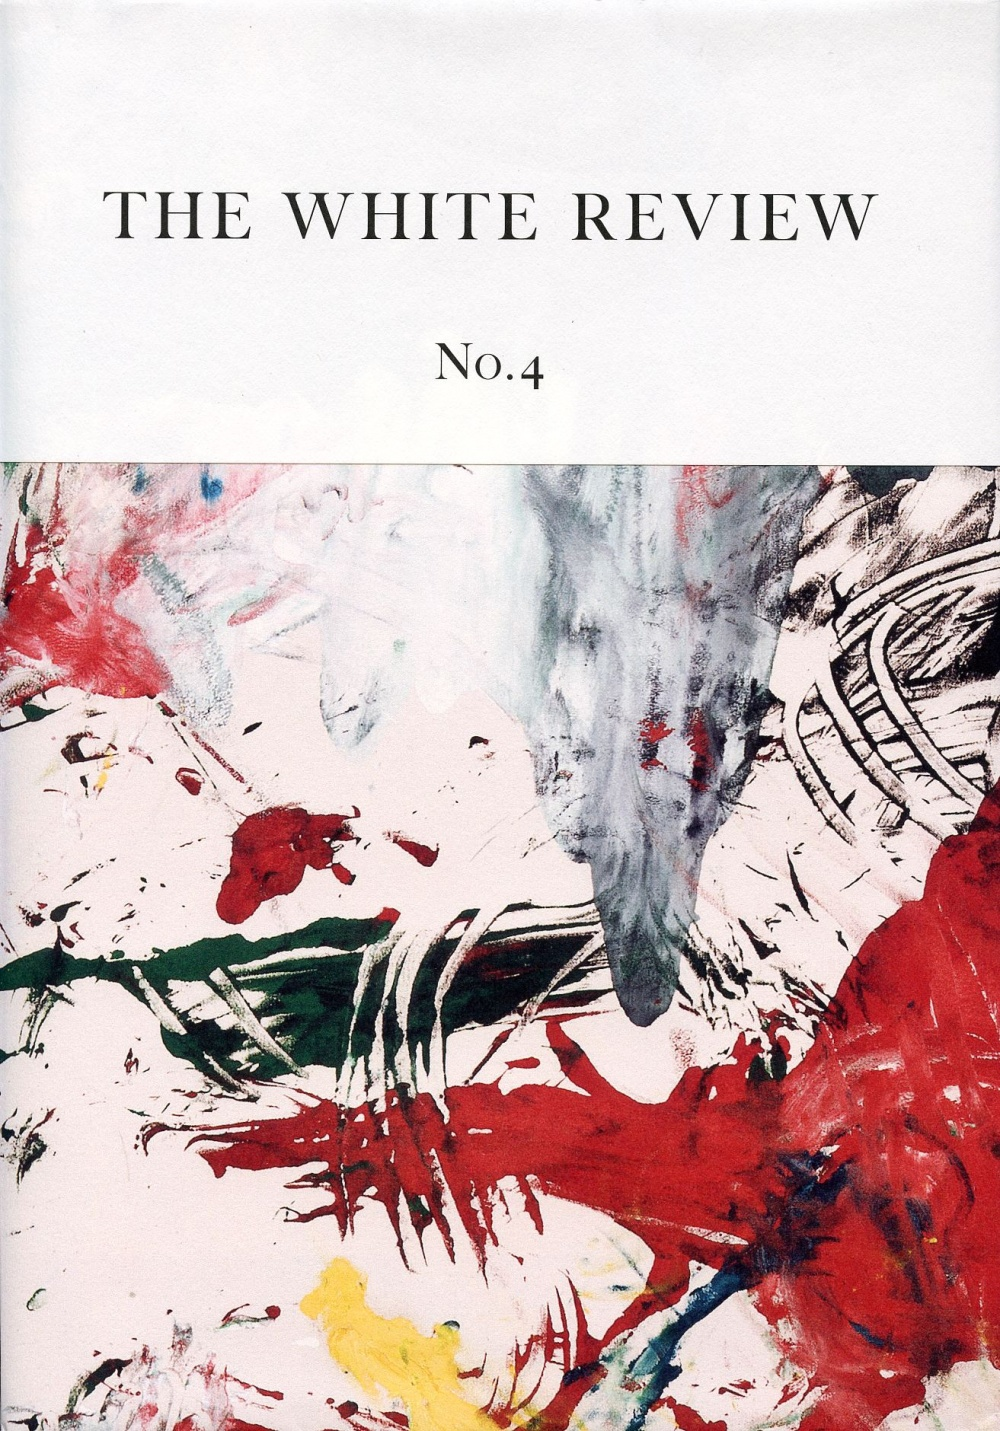 The White Review No. 4